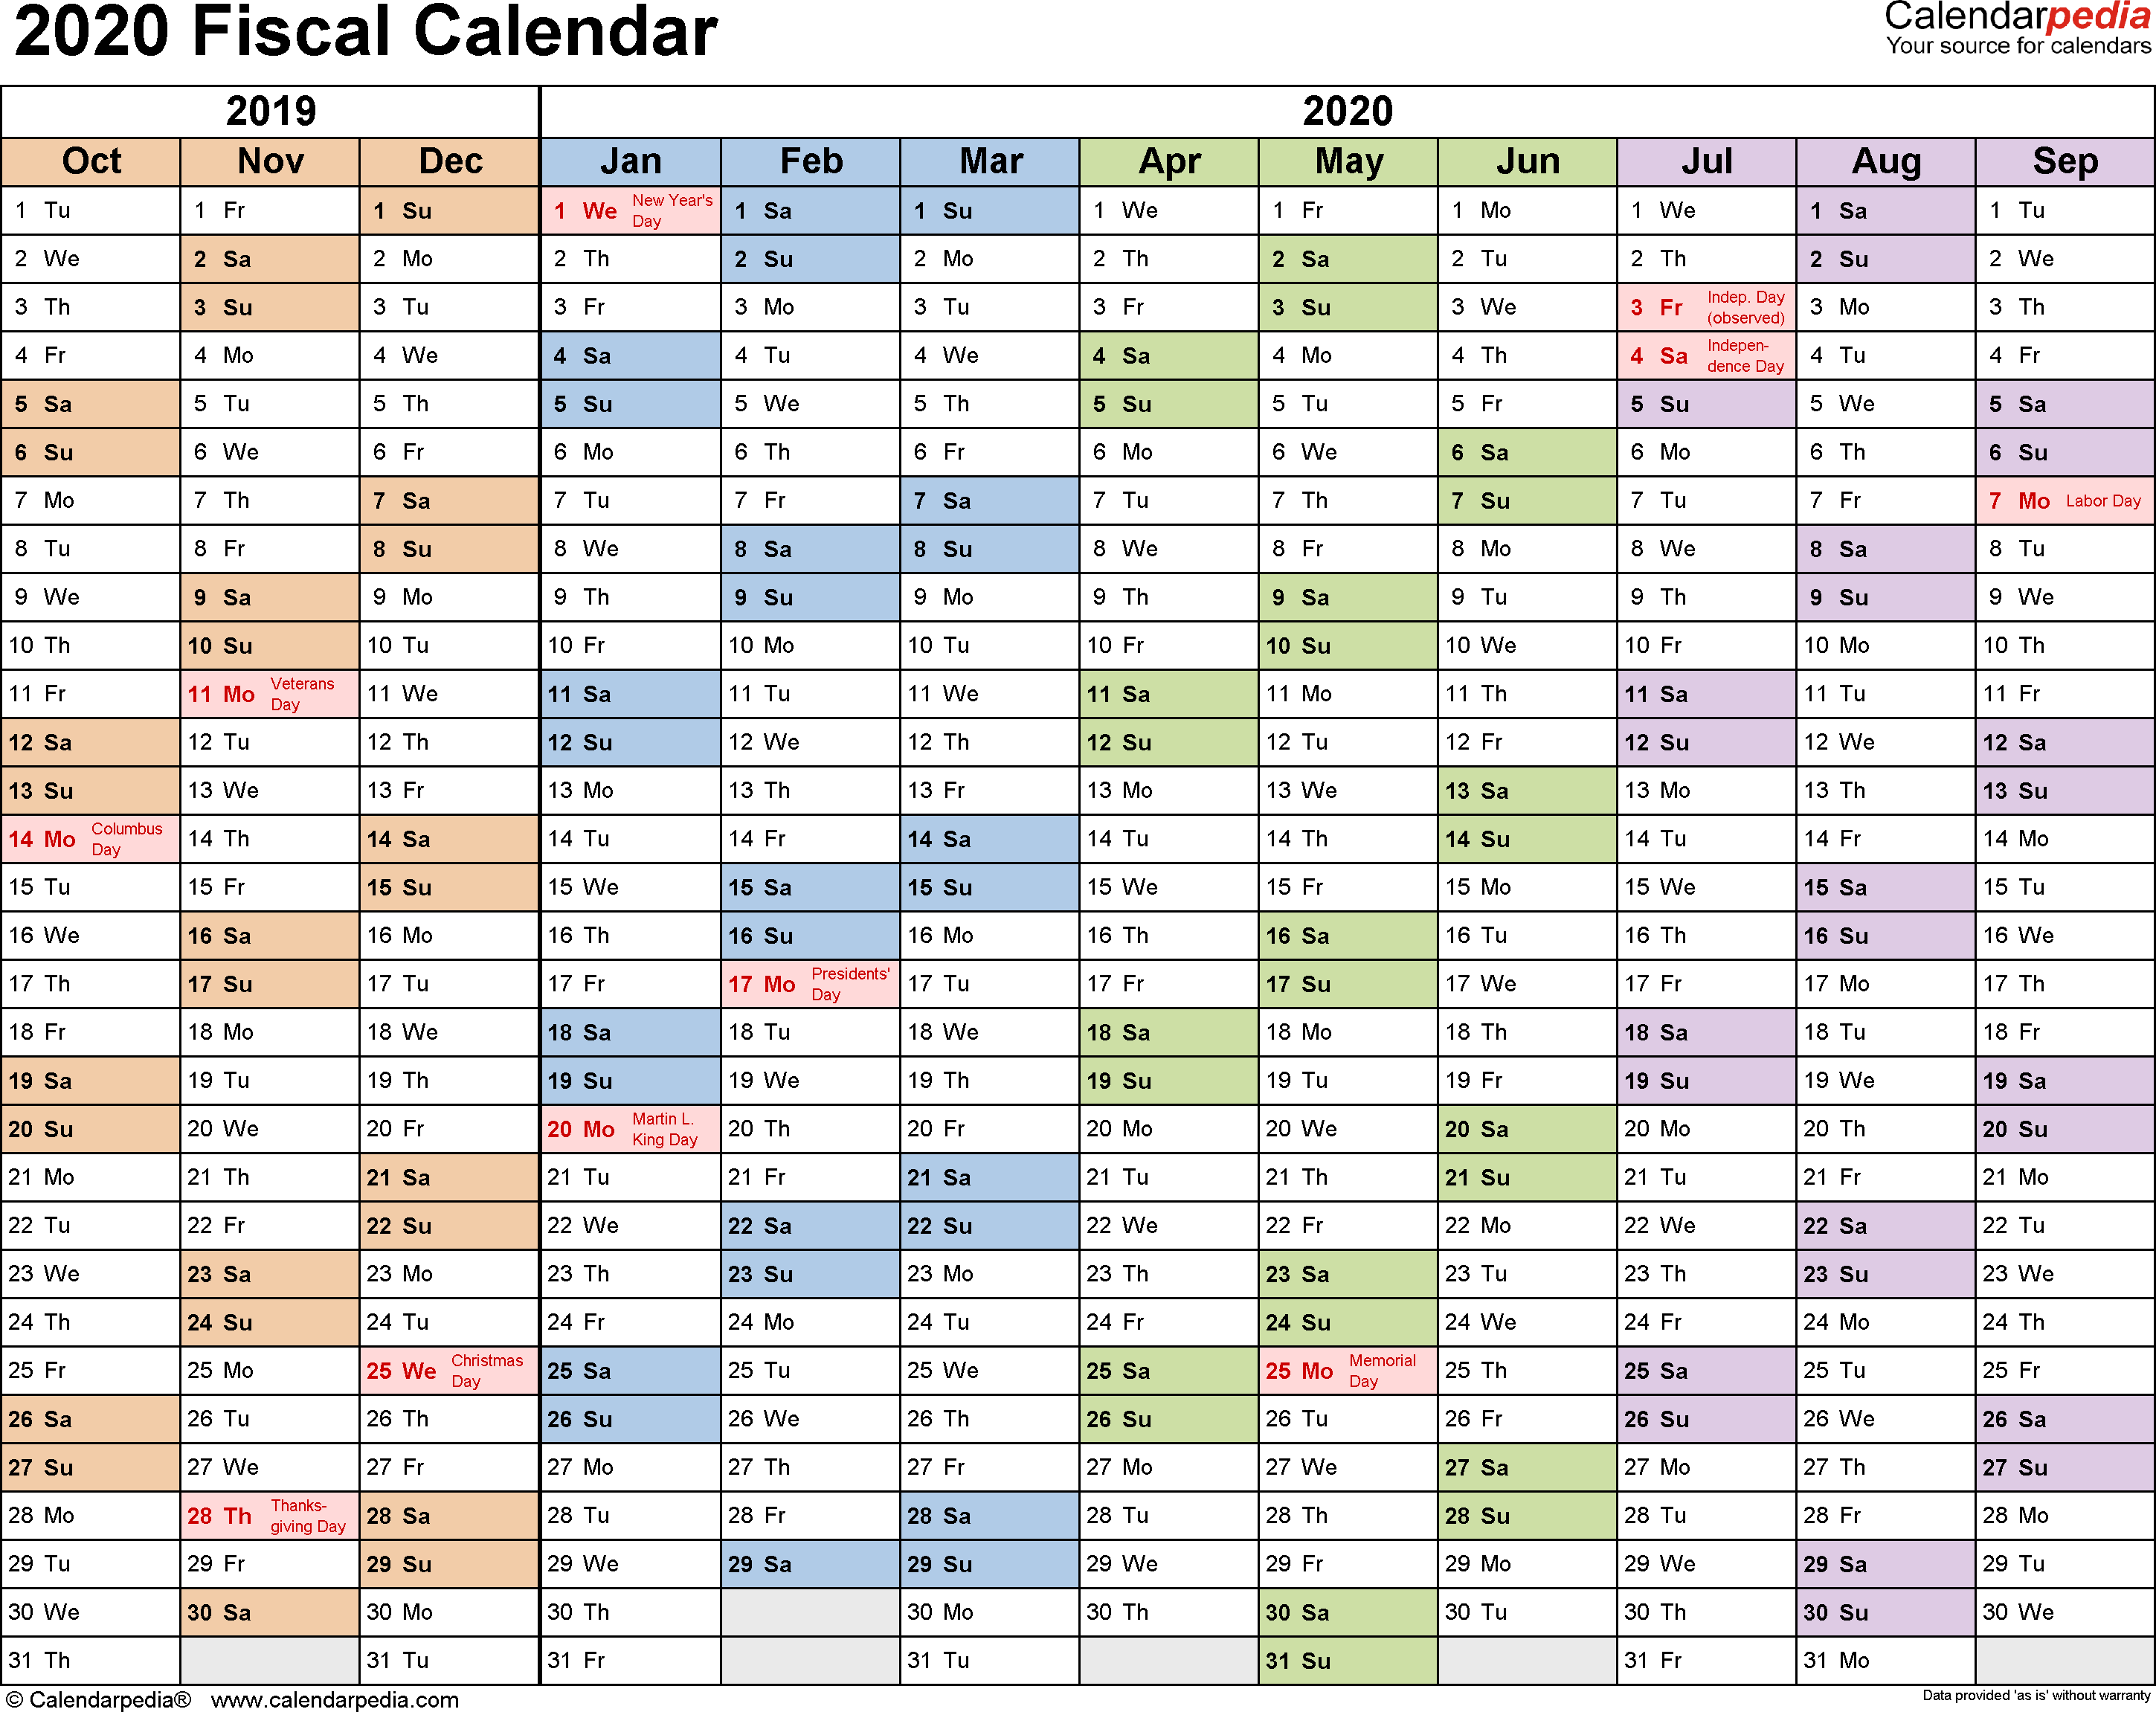 Fiscal Calendars 2020 - Free Printable Excel Templates for Payroll Calendar 2020 Excel